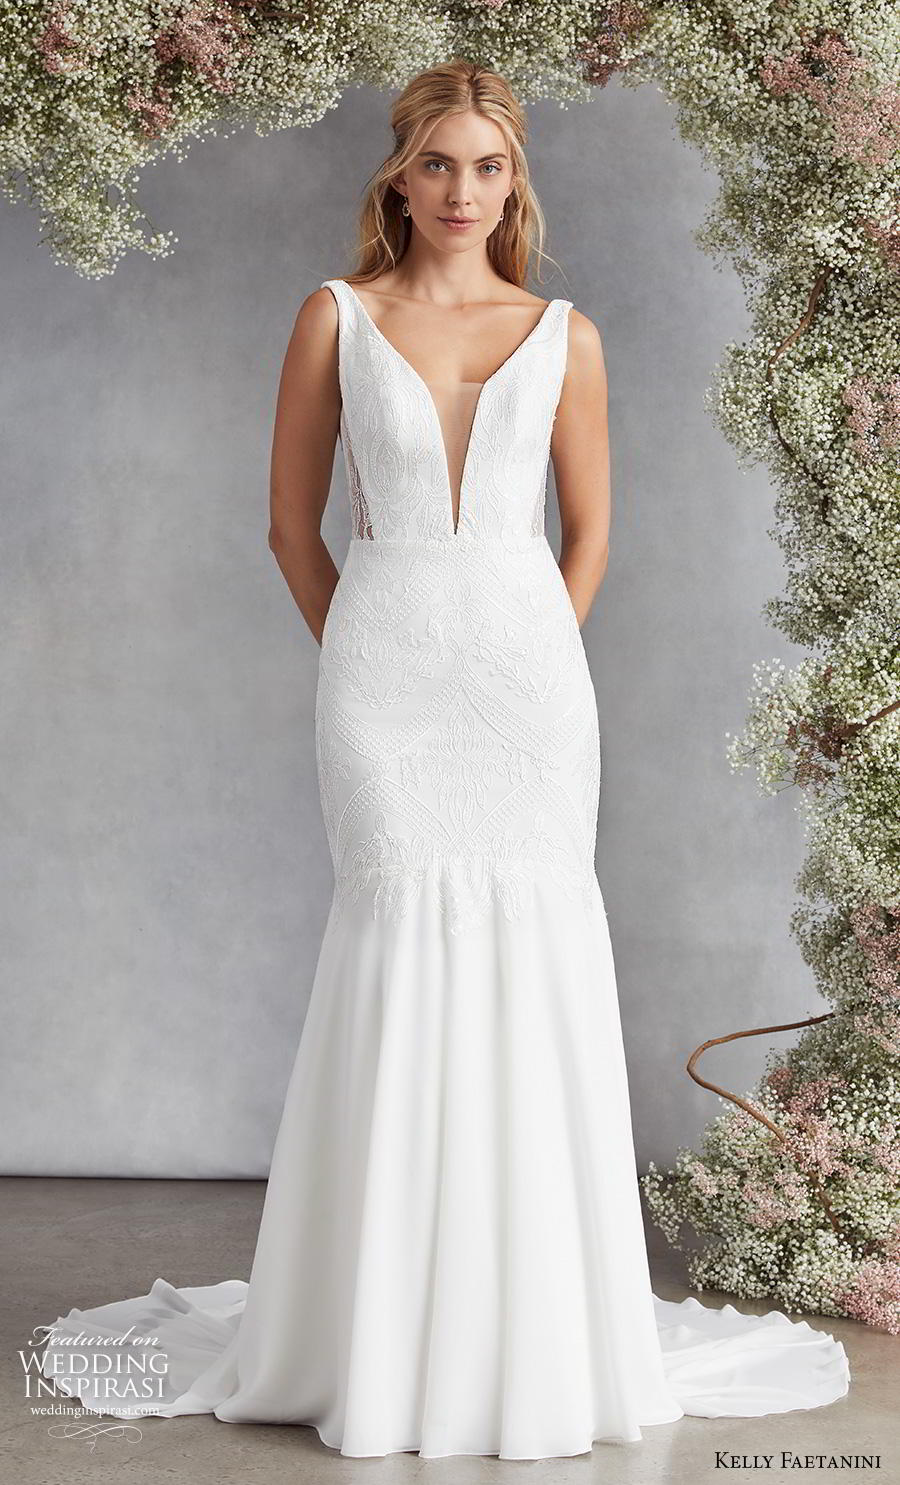 kelly faetanini fall 2020 bridal sleeveless deep plunging v neck heavily embellished bodice elegant classic mermaid wedding dress backless v back chapel train (17) mv